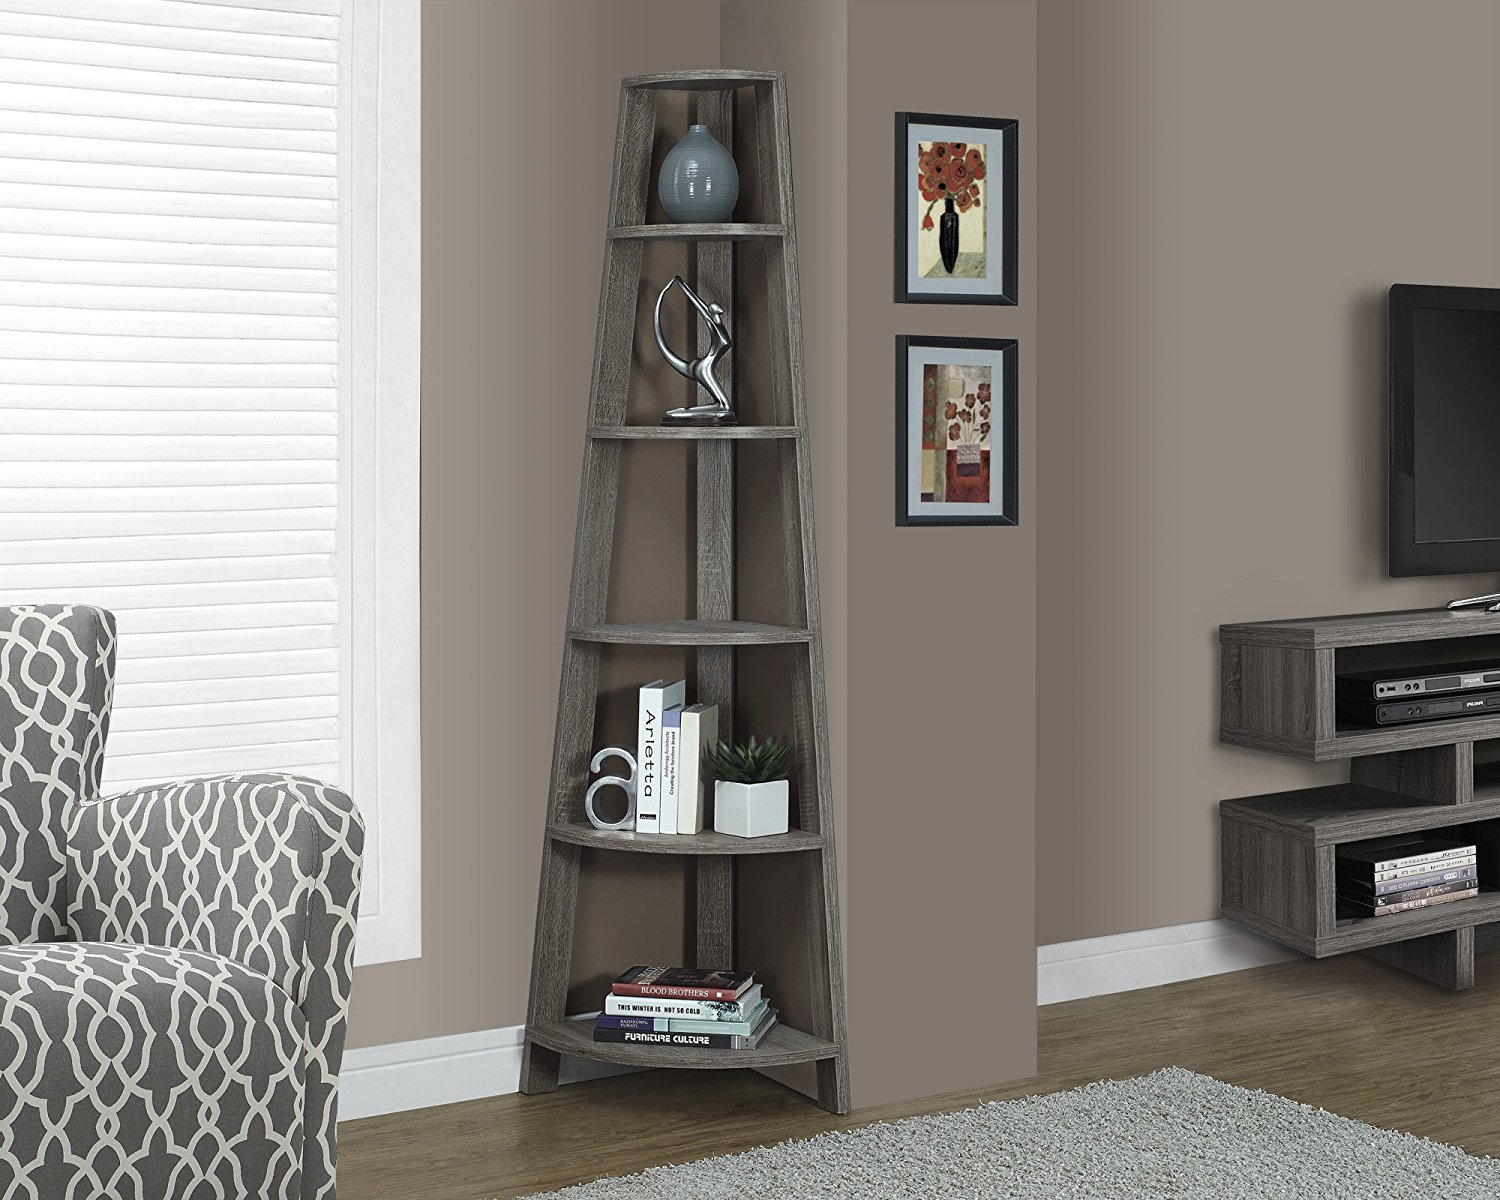 Super Bookshelf Ideas for Small Spaces and Apartments HD89